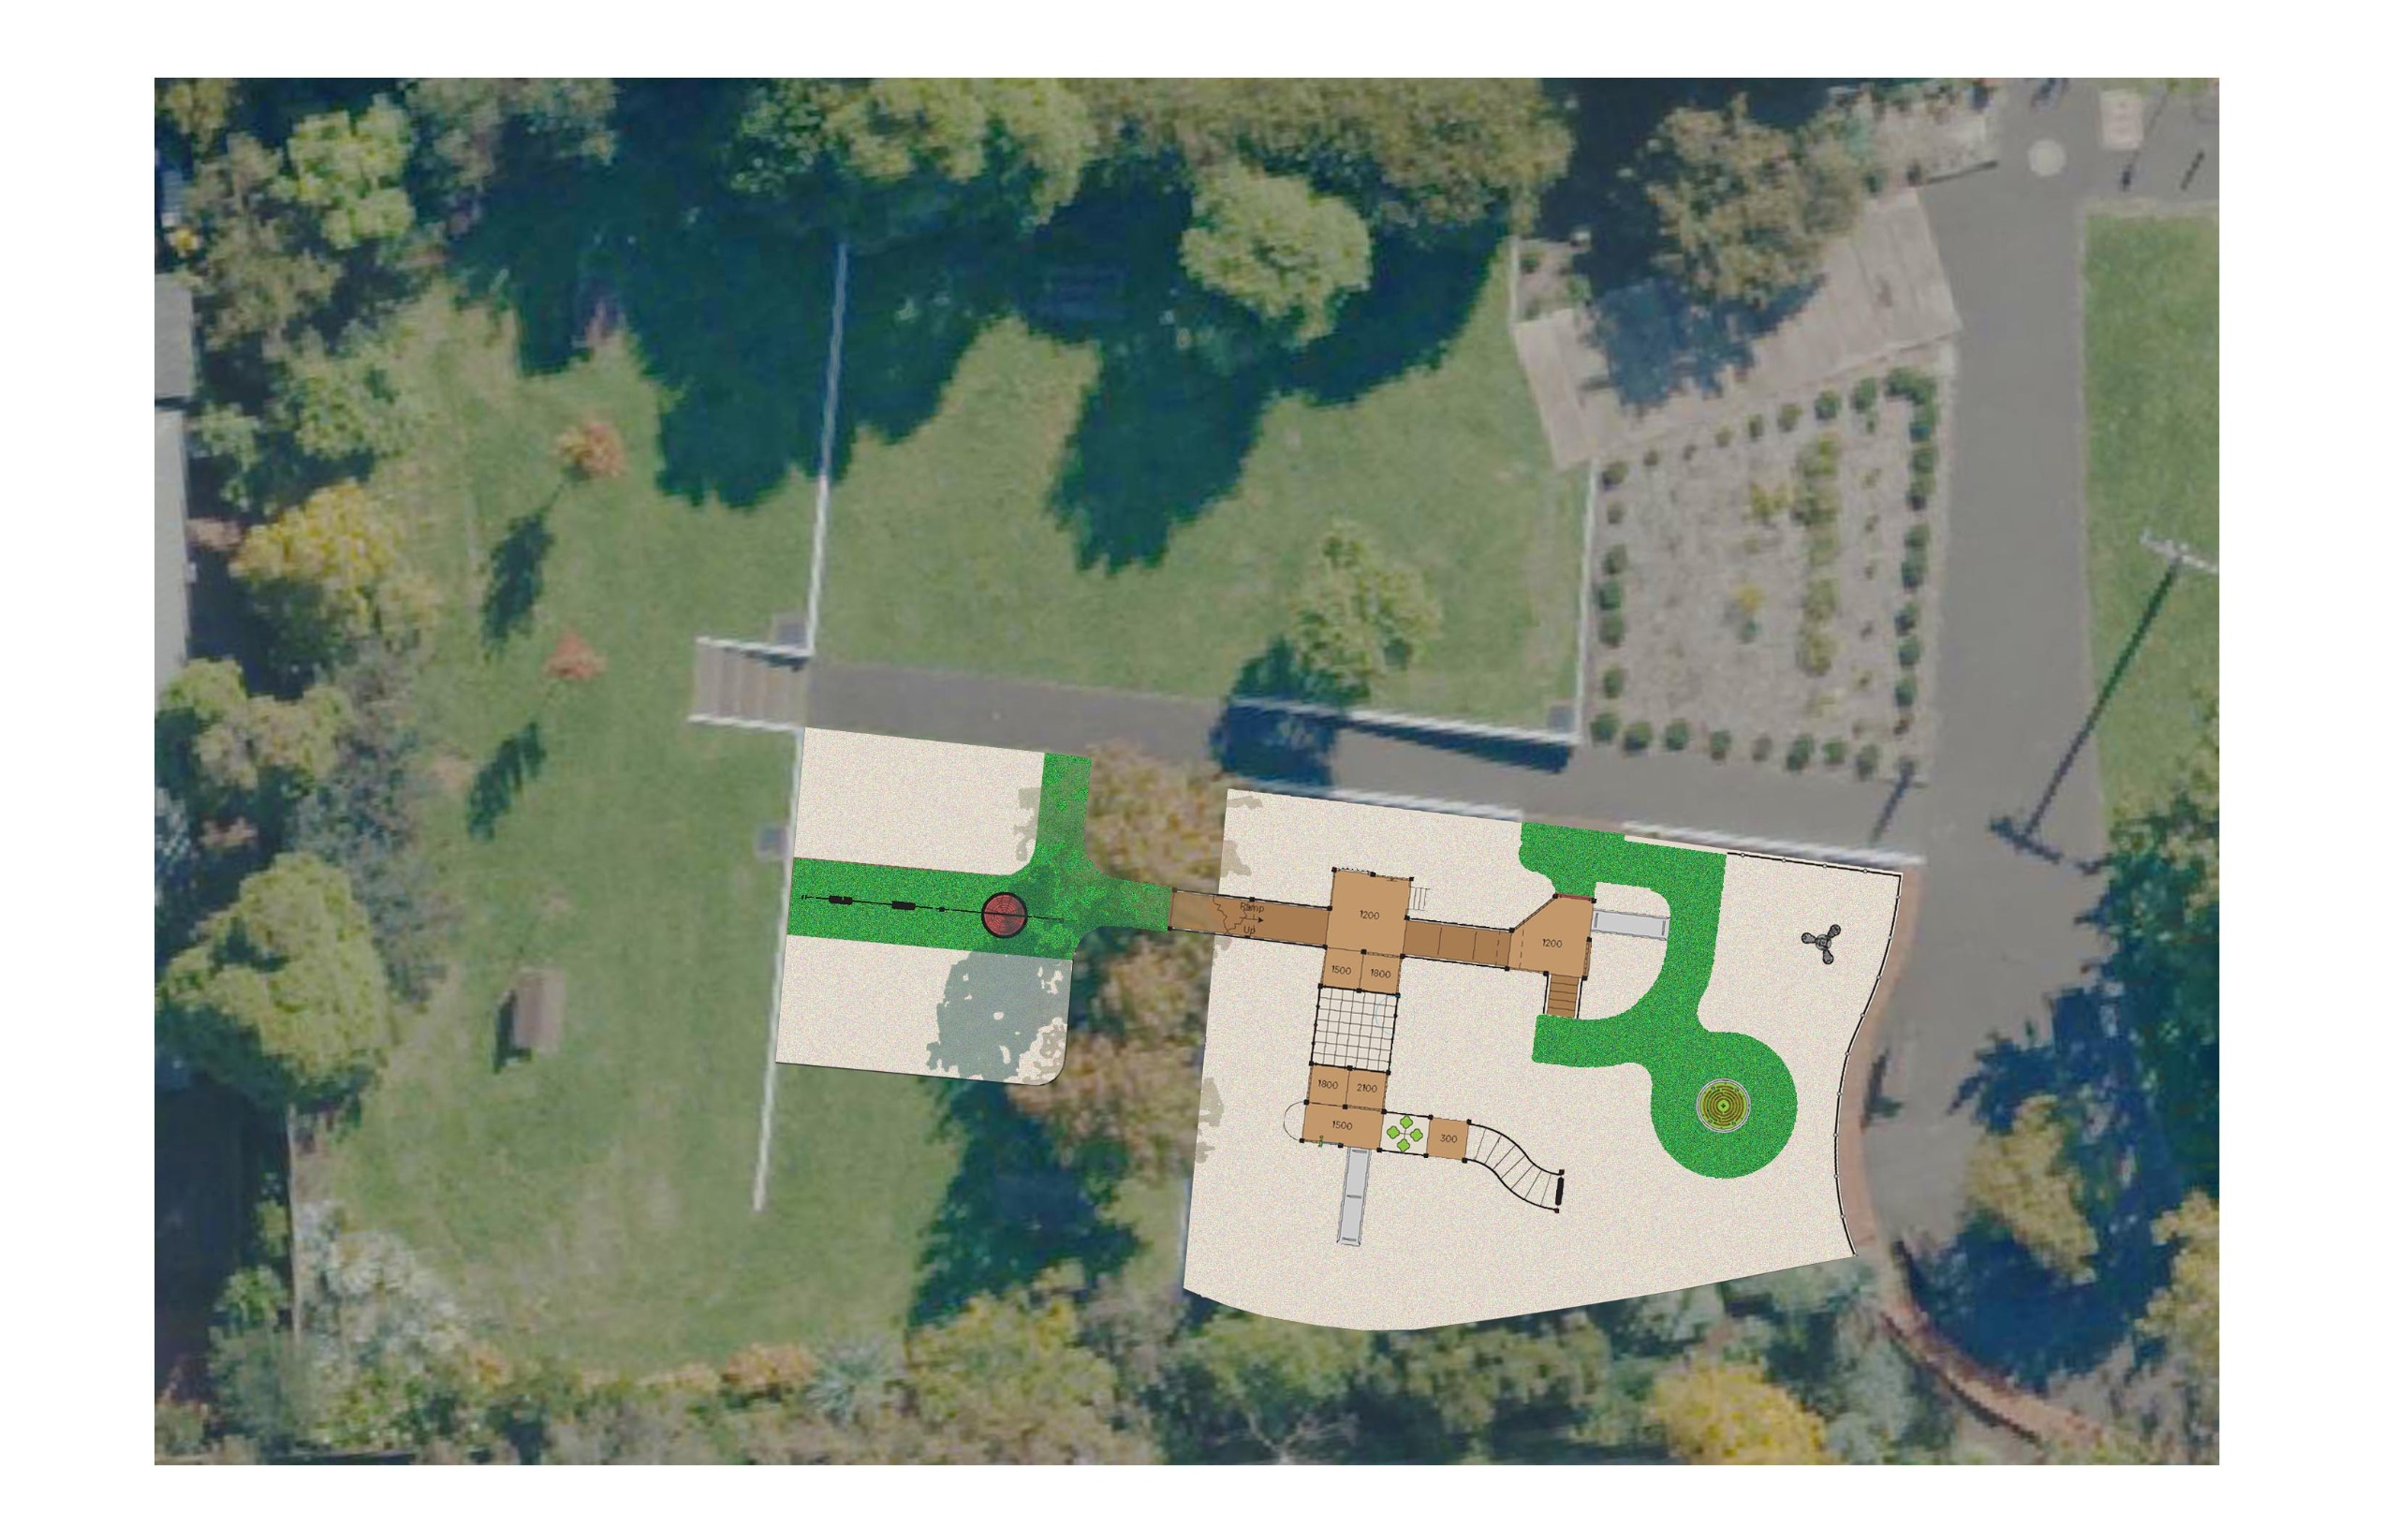 Playground design from above